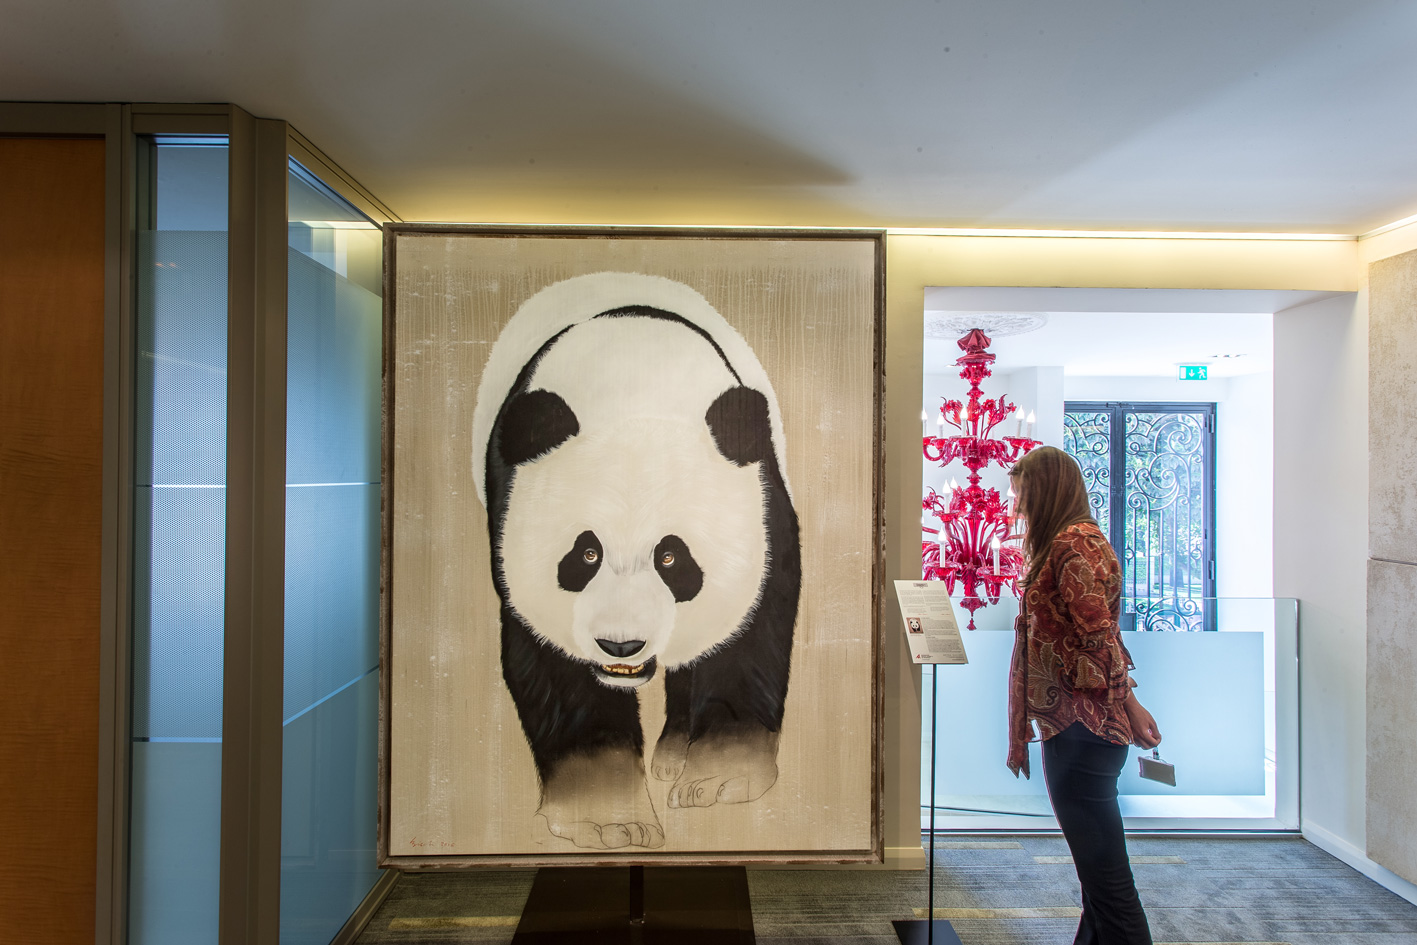 BARCLAY`S BANK panda-giant-ailuropoda-melanoleuca-threatened-endangered-extinction Thierry Bisch Contemporary painter animals painting art  nature biodiversity conservation